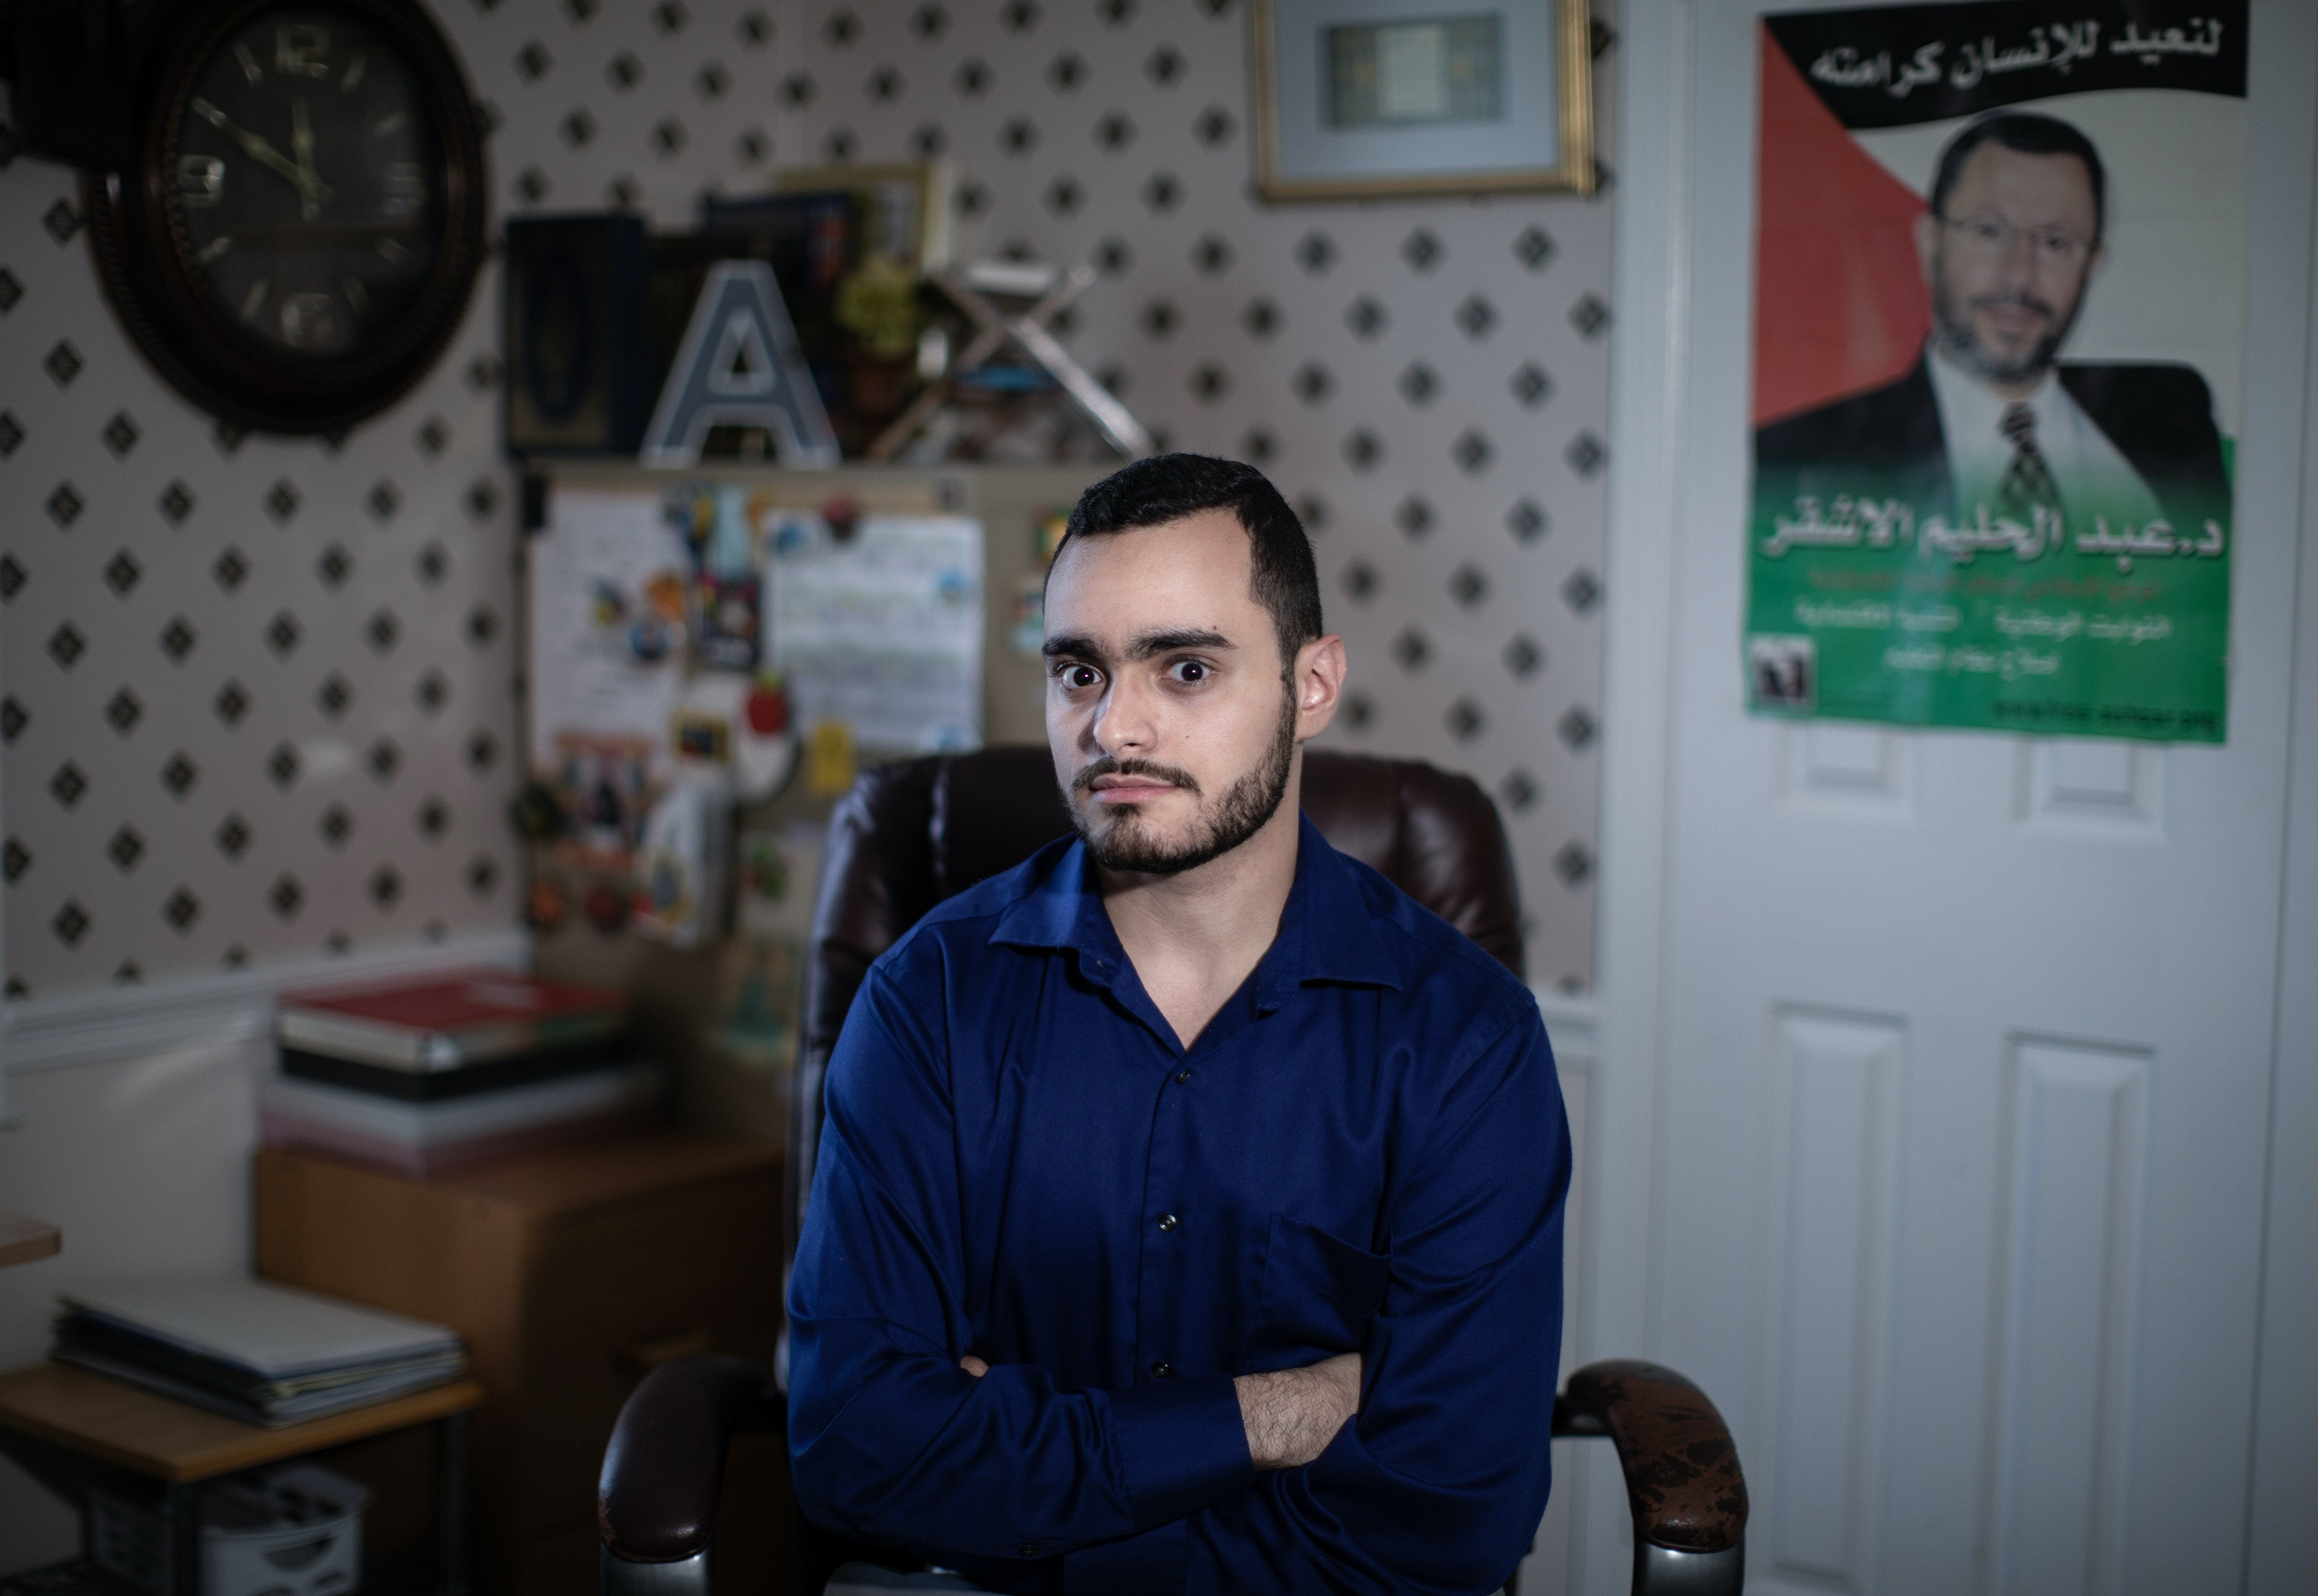 Ahmad, 23,  son of Abedlhaleem Ashqar, posing for a portrait with his father's photo in the background  at his house in Northern Virginia. Abdelhaleem Ashqar recently served 11 years in prison for refusing to testify to a grand jury investigating the Palestinian militant group Hamas.